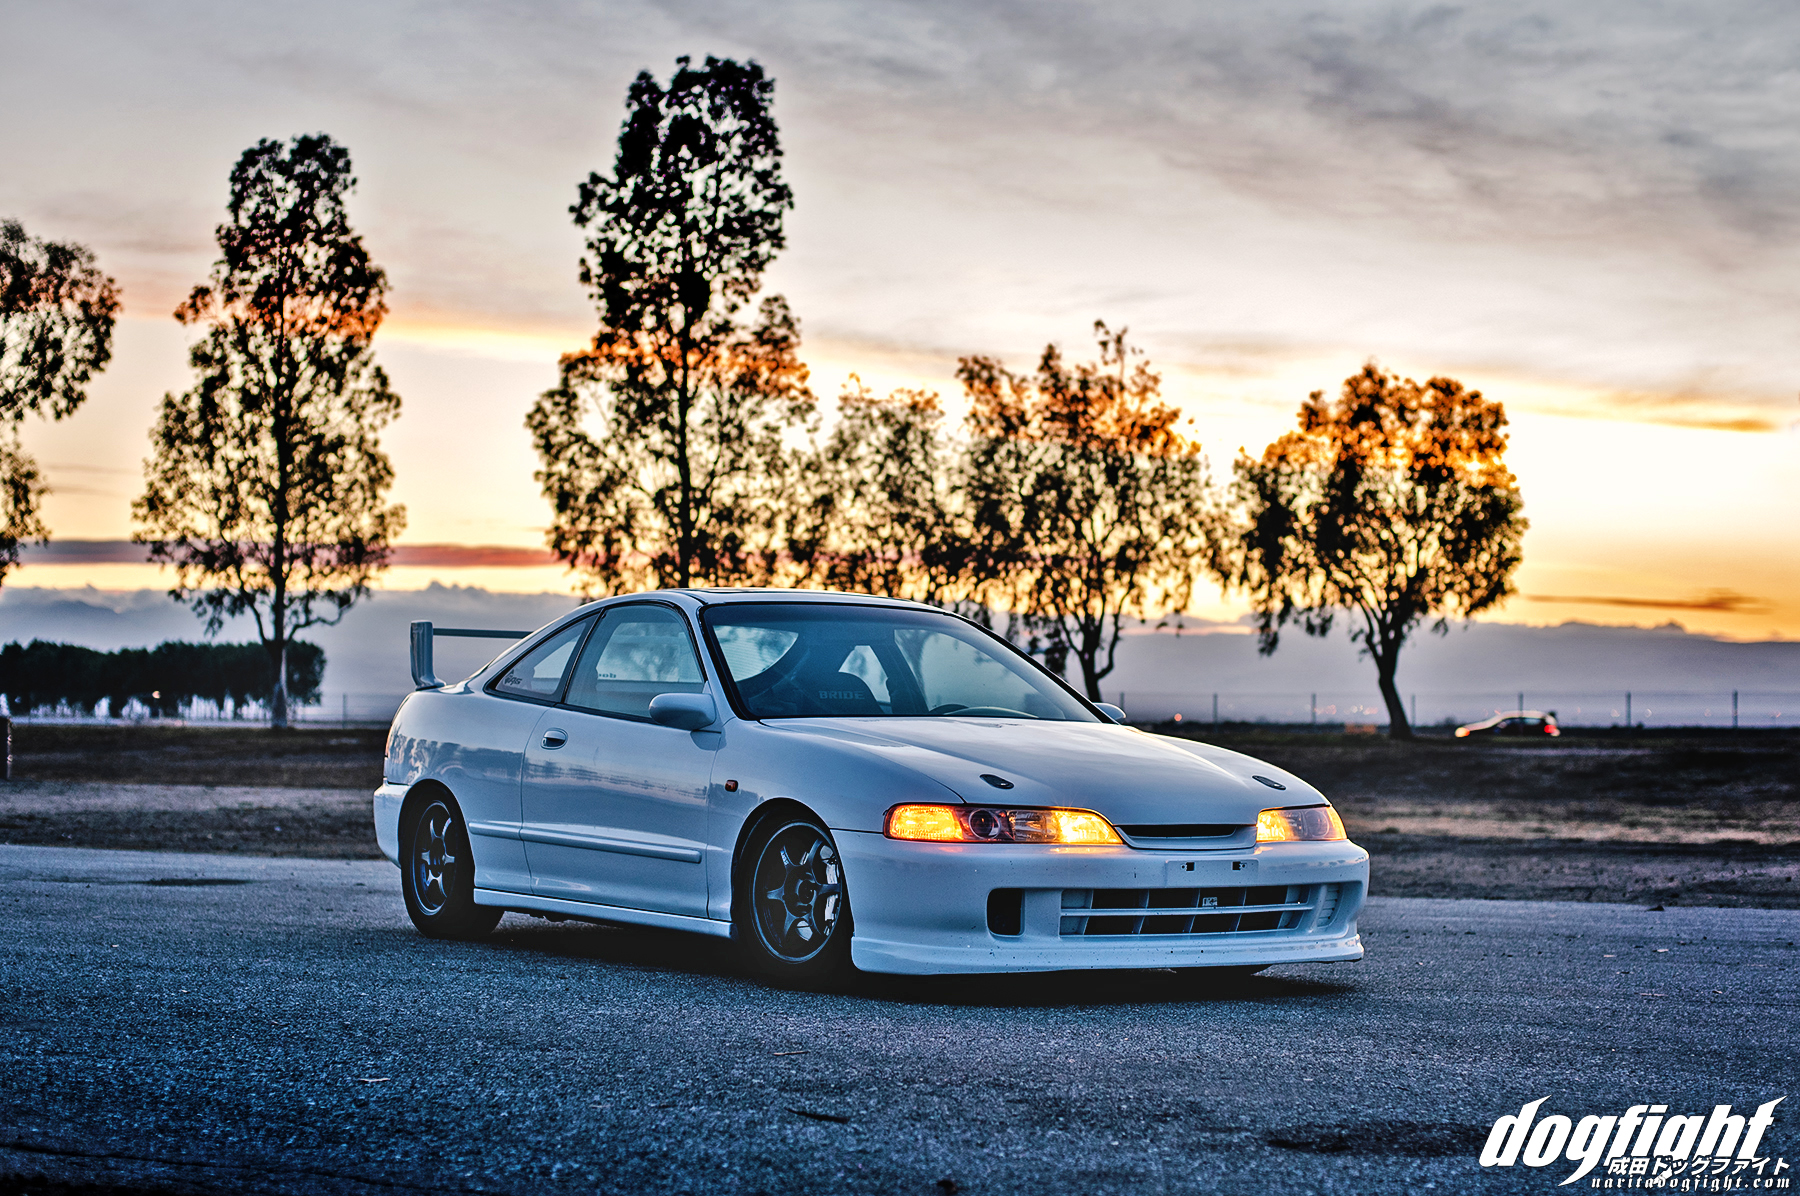 Feature: The Casual Race Car – NDF B20 Spec DC2